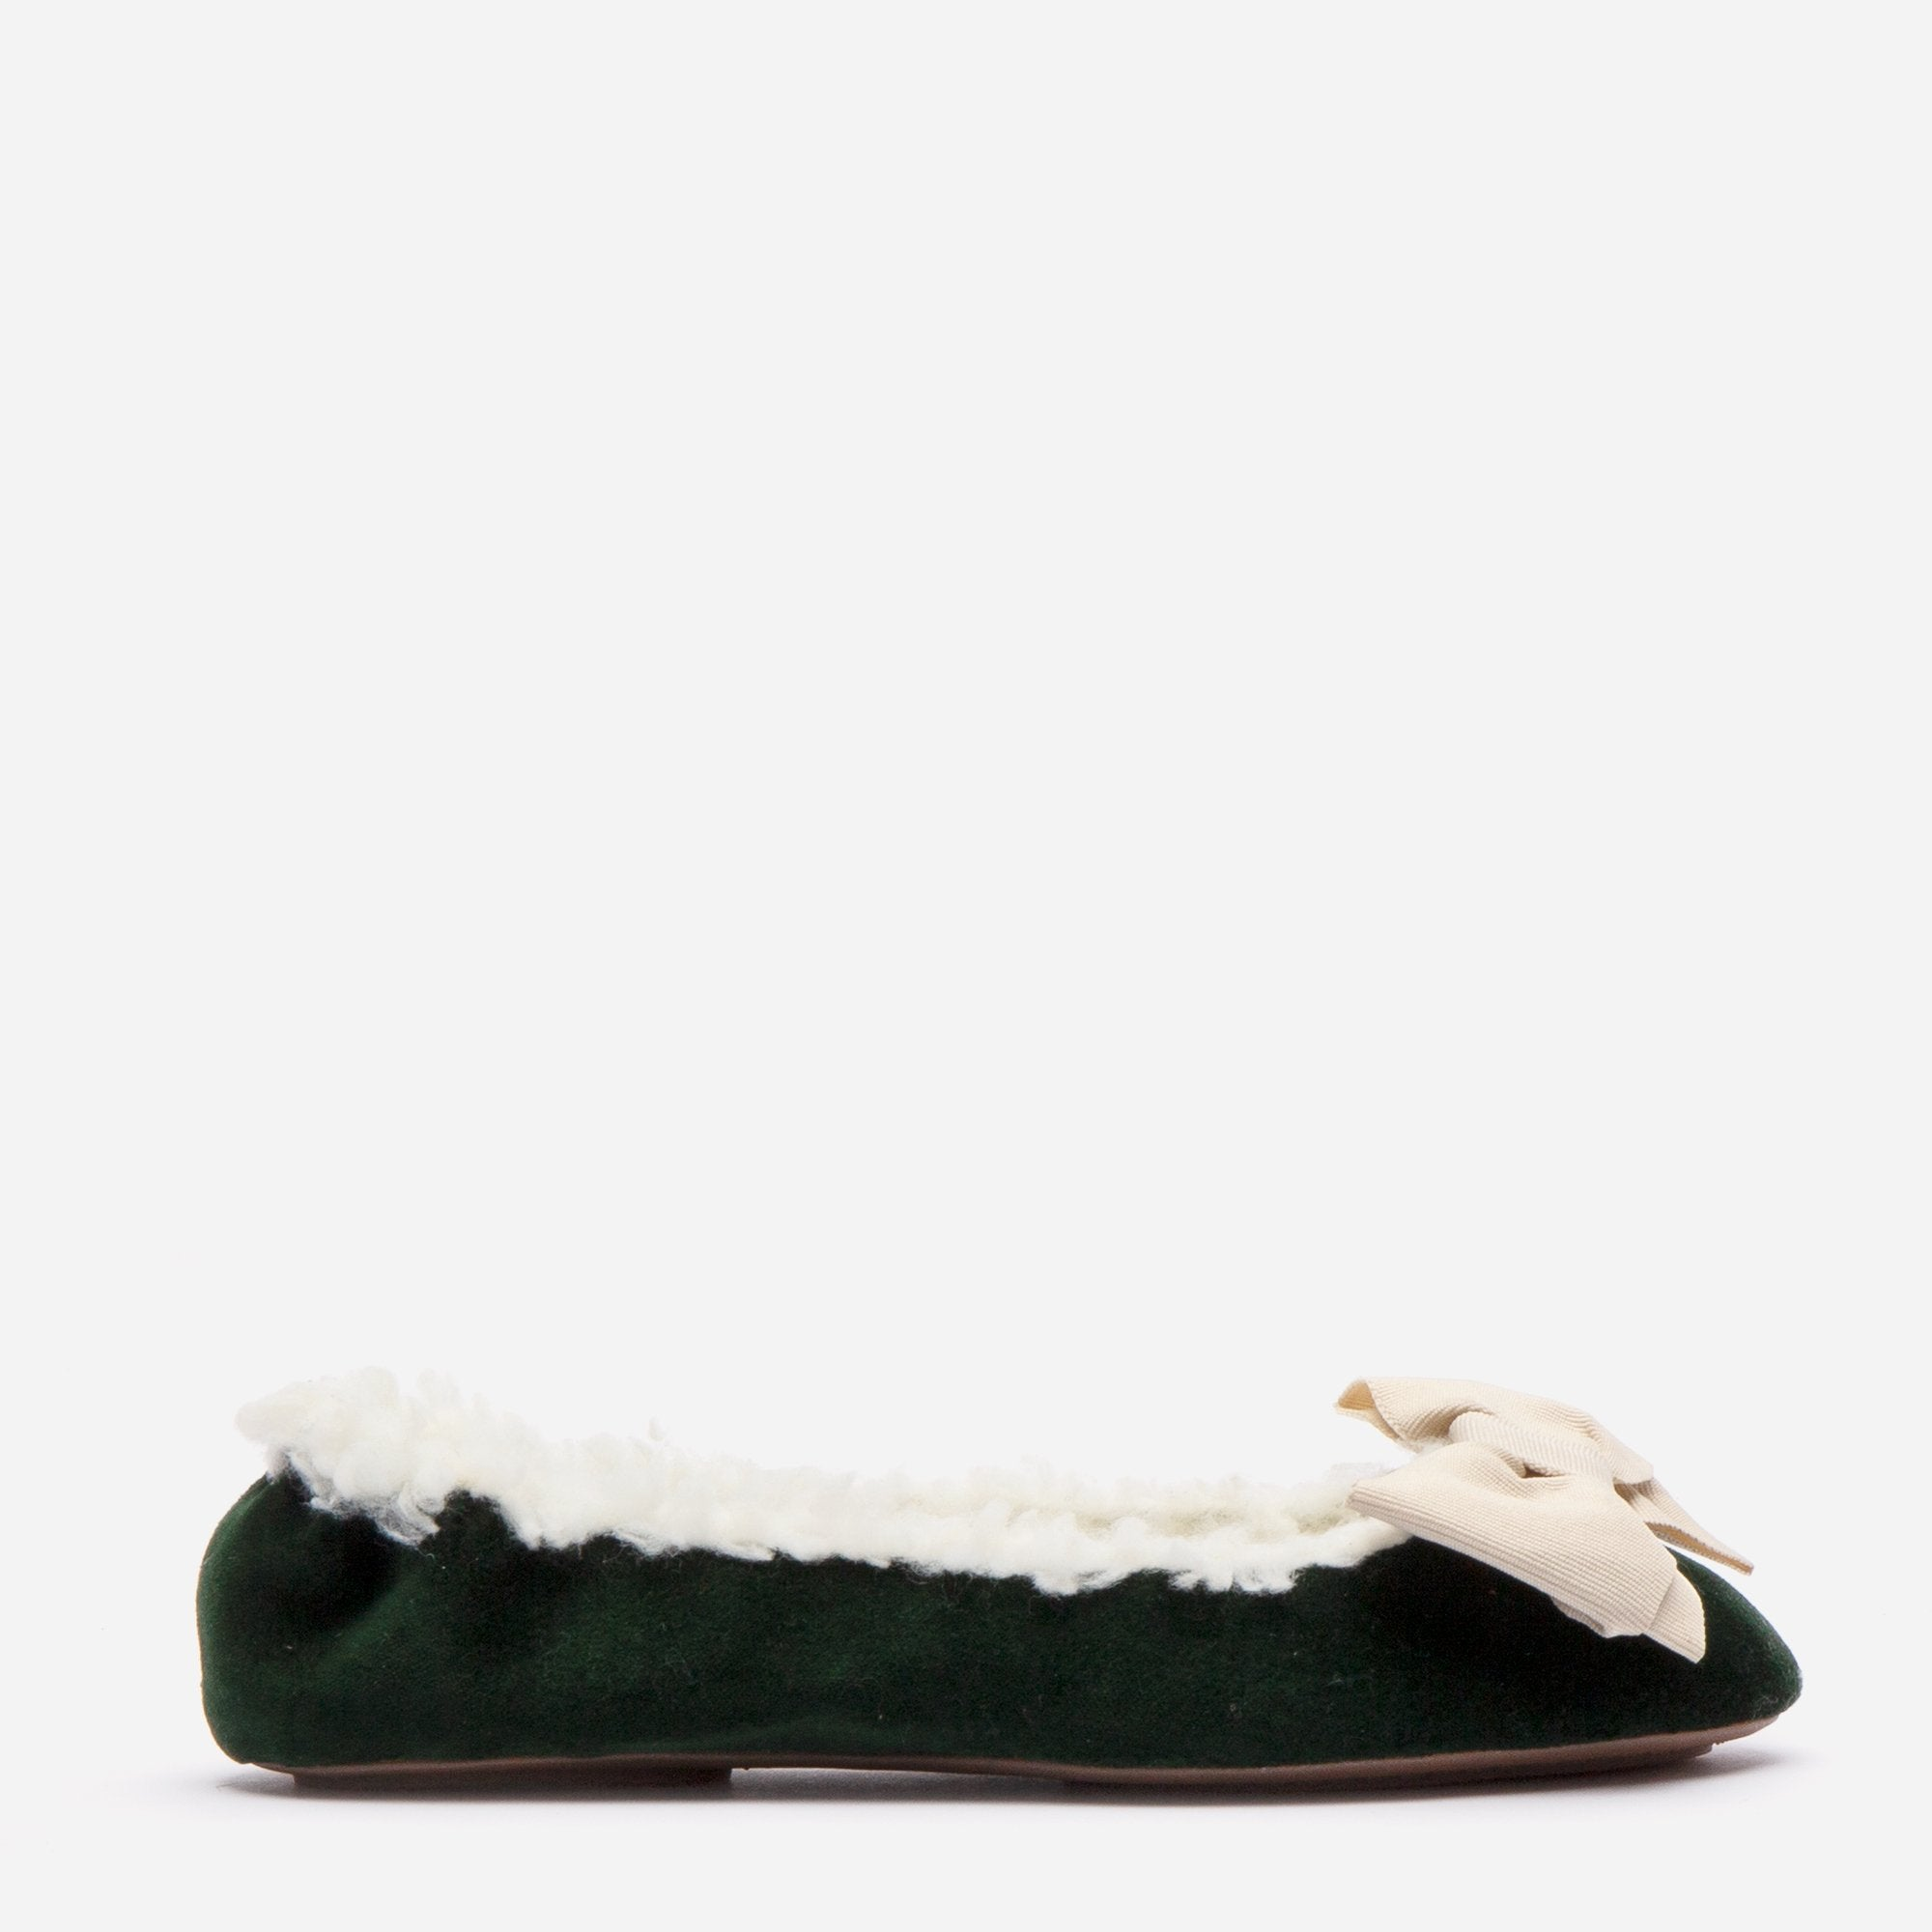 Velvet Bow Slipper Faux Shearling Forest Green - Frances Valentine